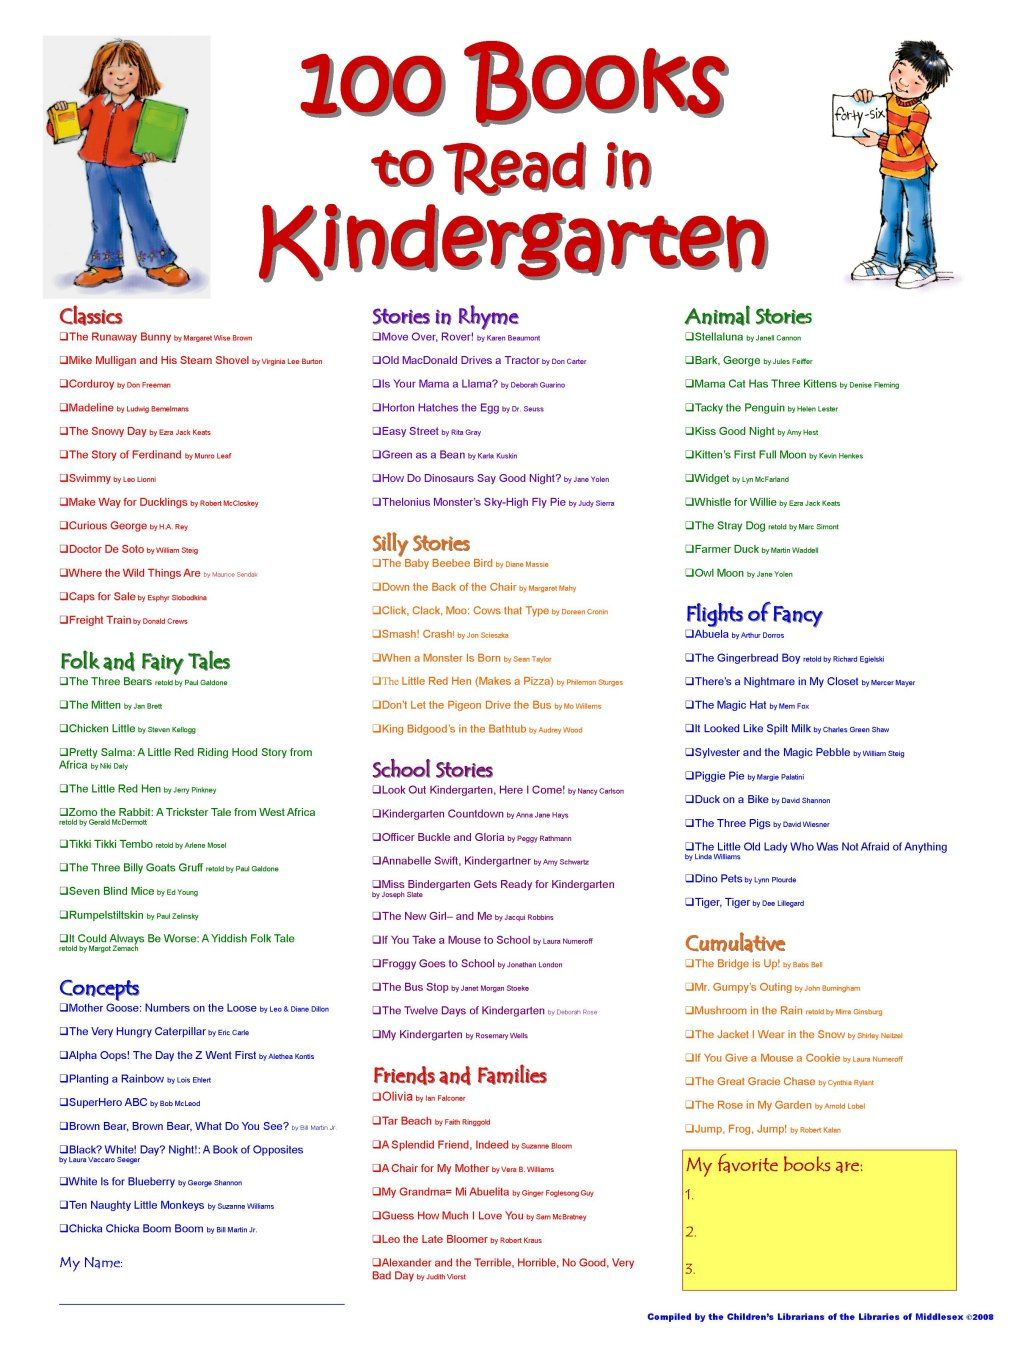 Books For Kindergarten | Kindergarten Ideas